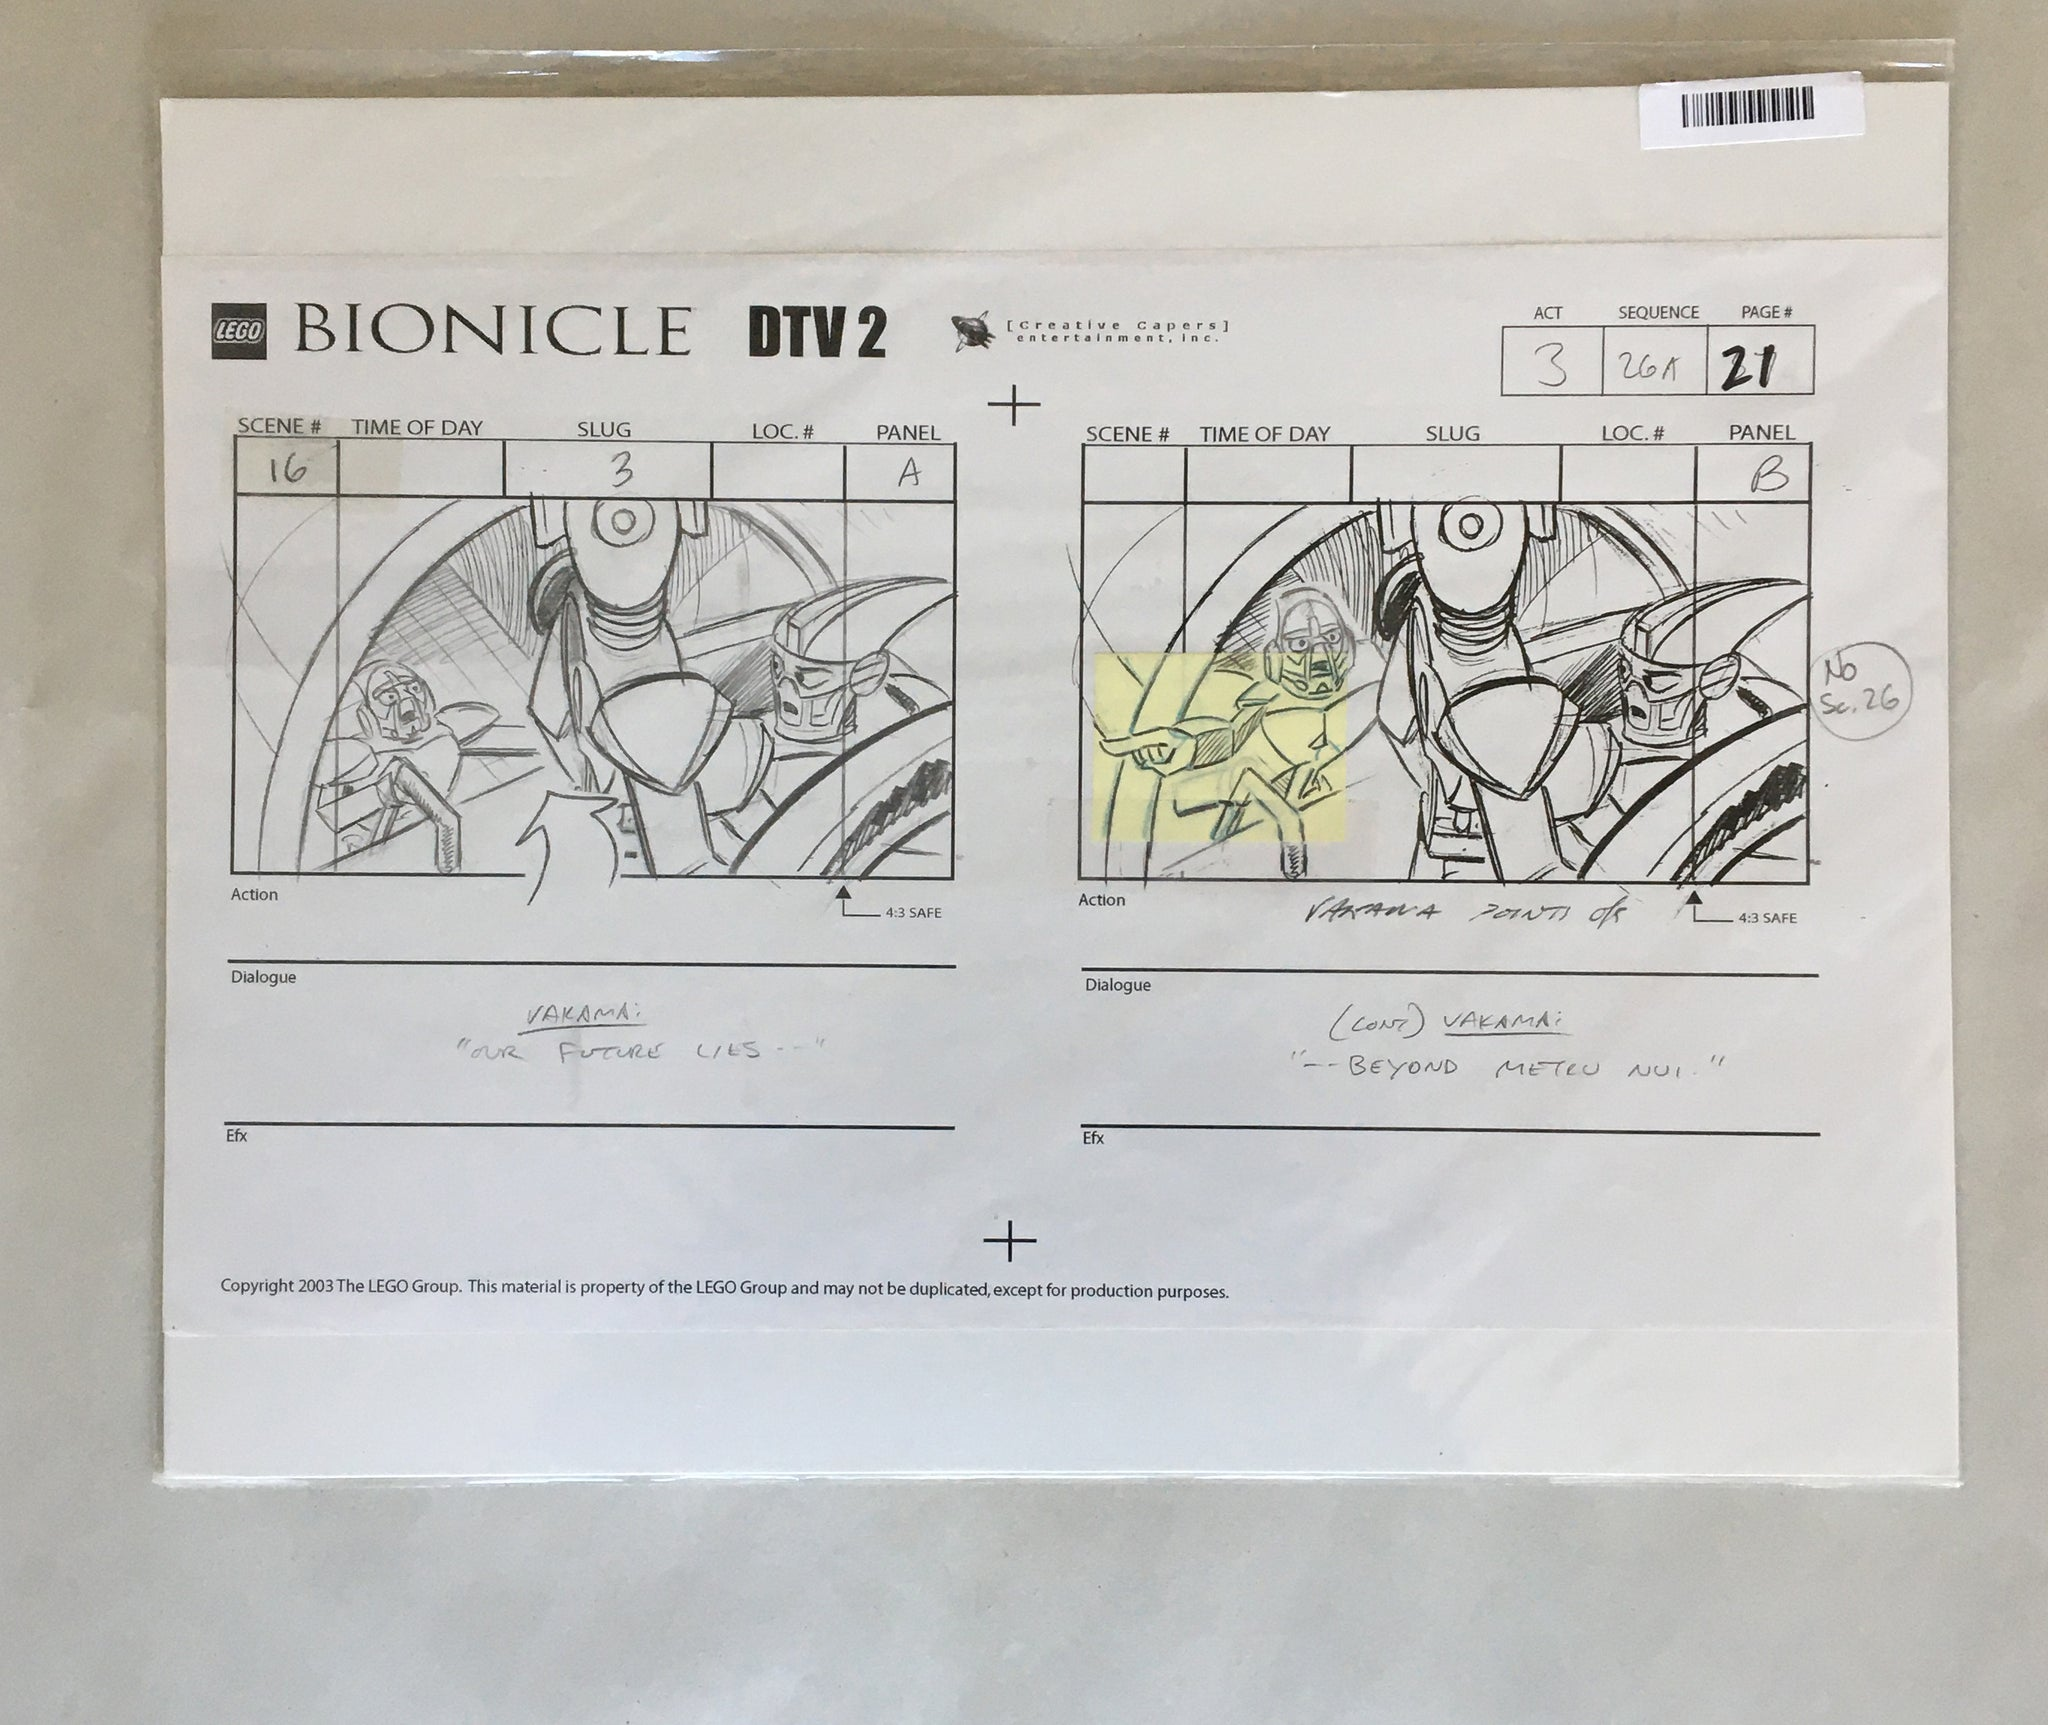 Lego Bionicle StoryBoard 5 (EX0062) - Animation Legends